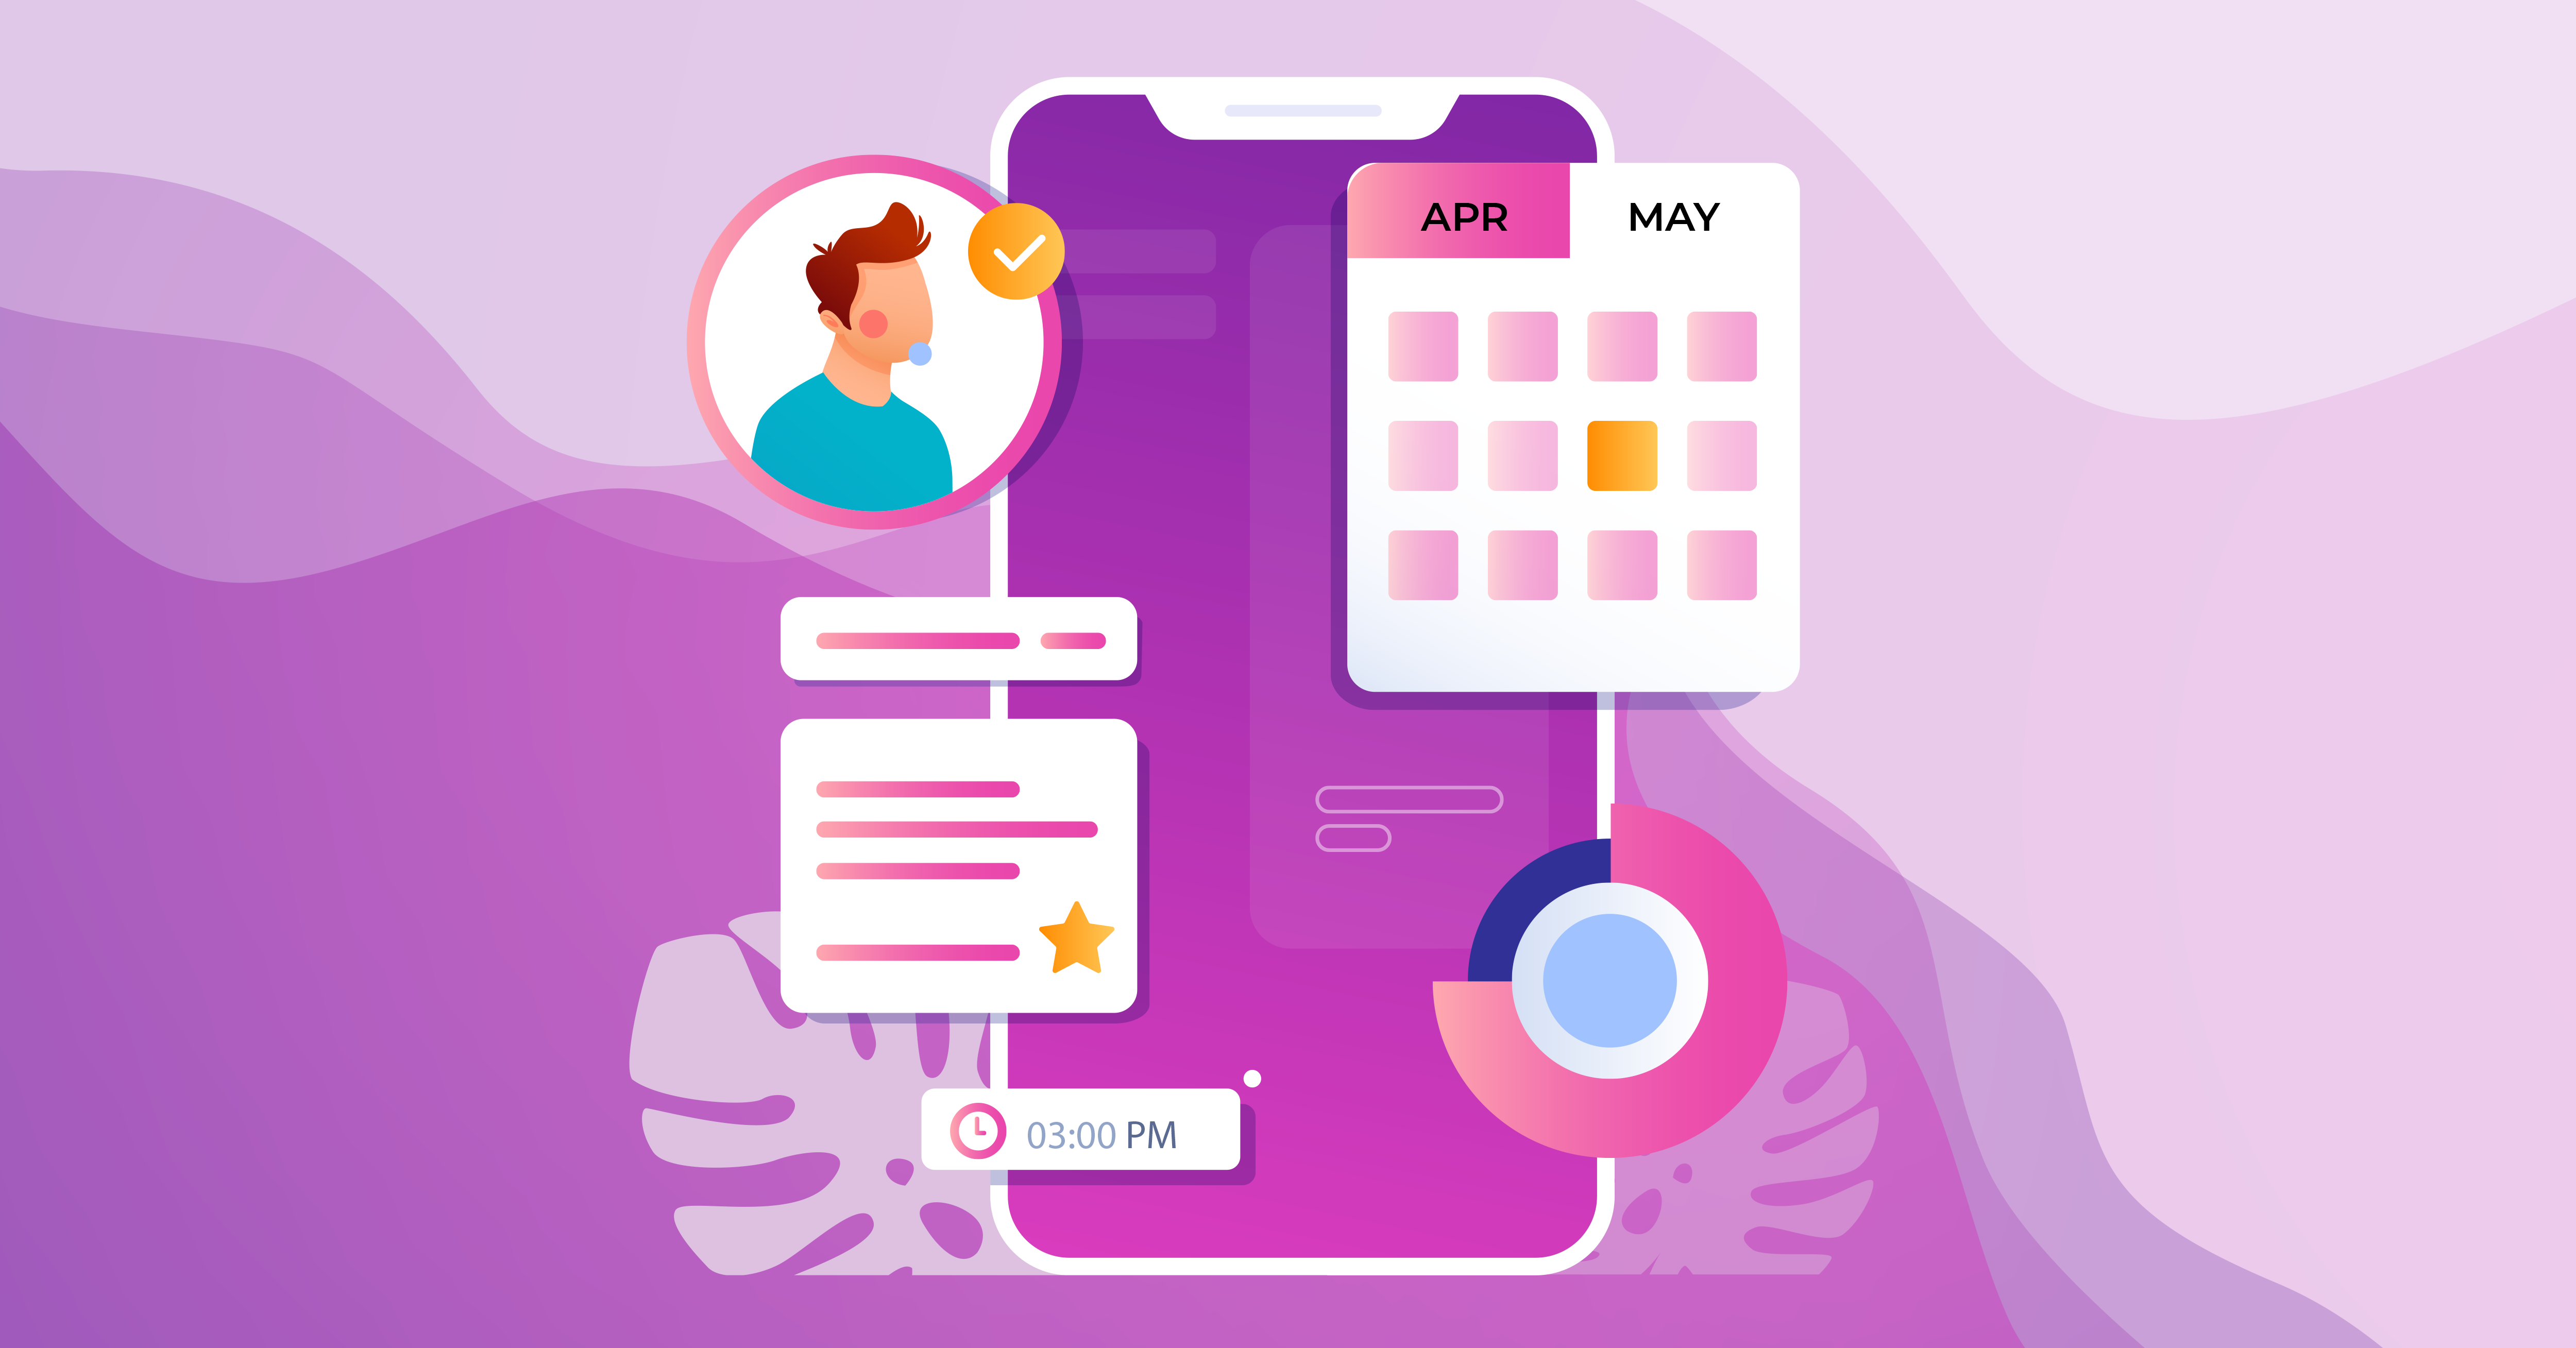 https://spotme.com/wp-content/uploads/2021/01/Hero_The-Best-Virtual-Event-Planning-Checklist-For-Your-Event-Committee.png